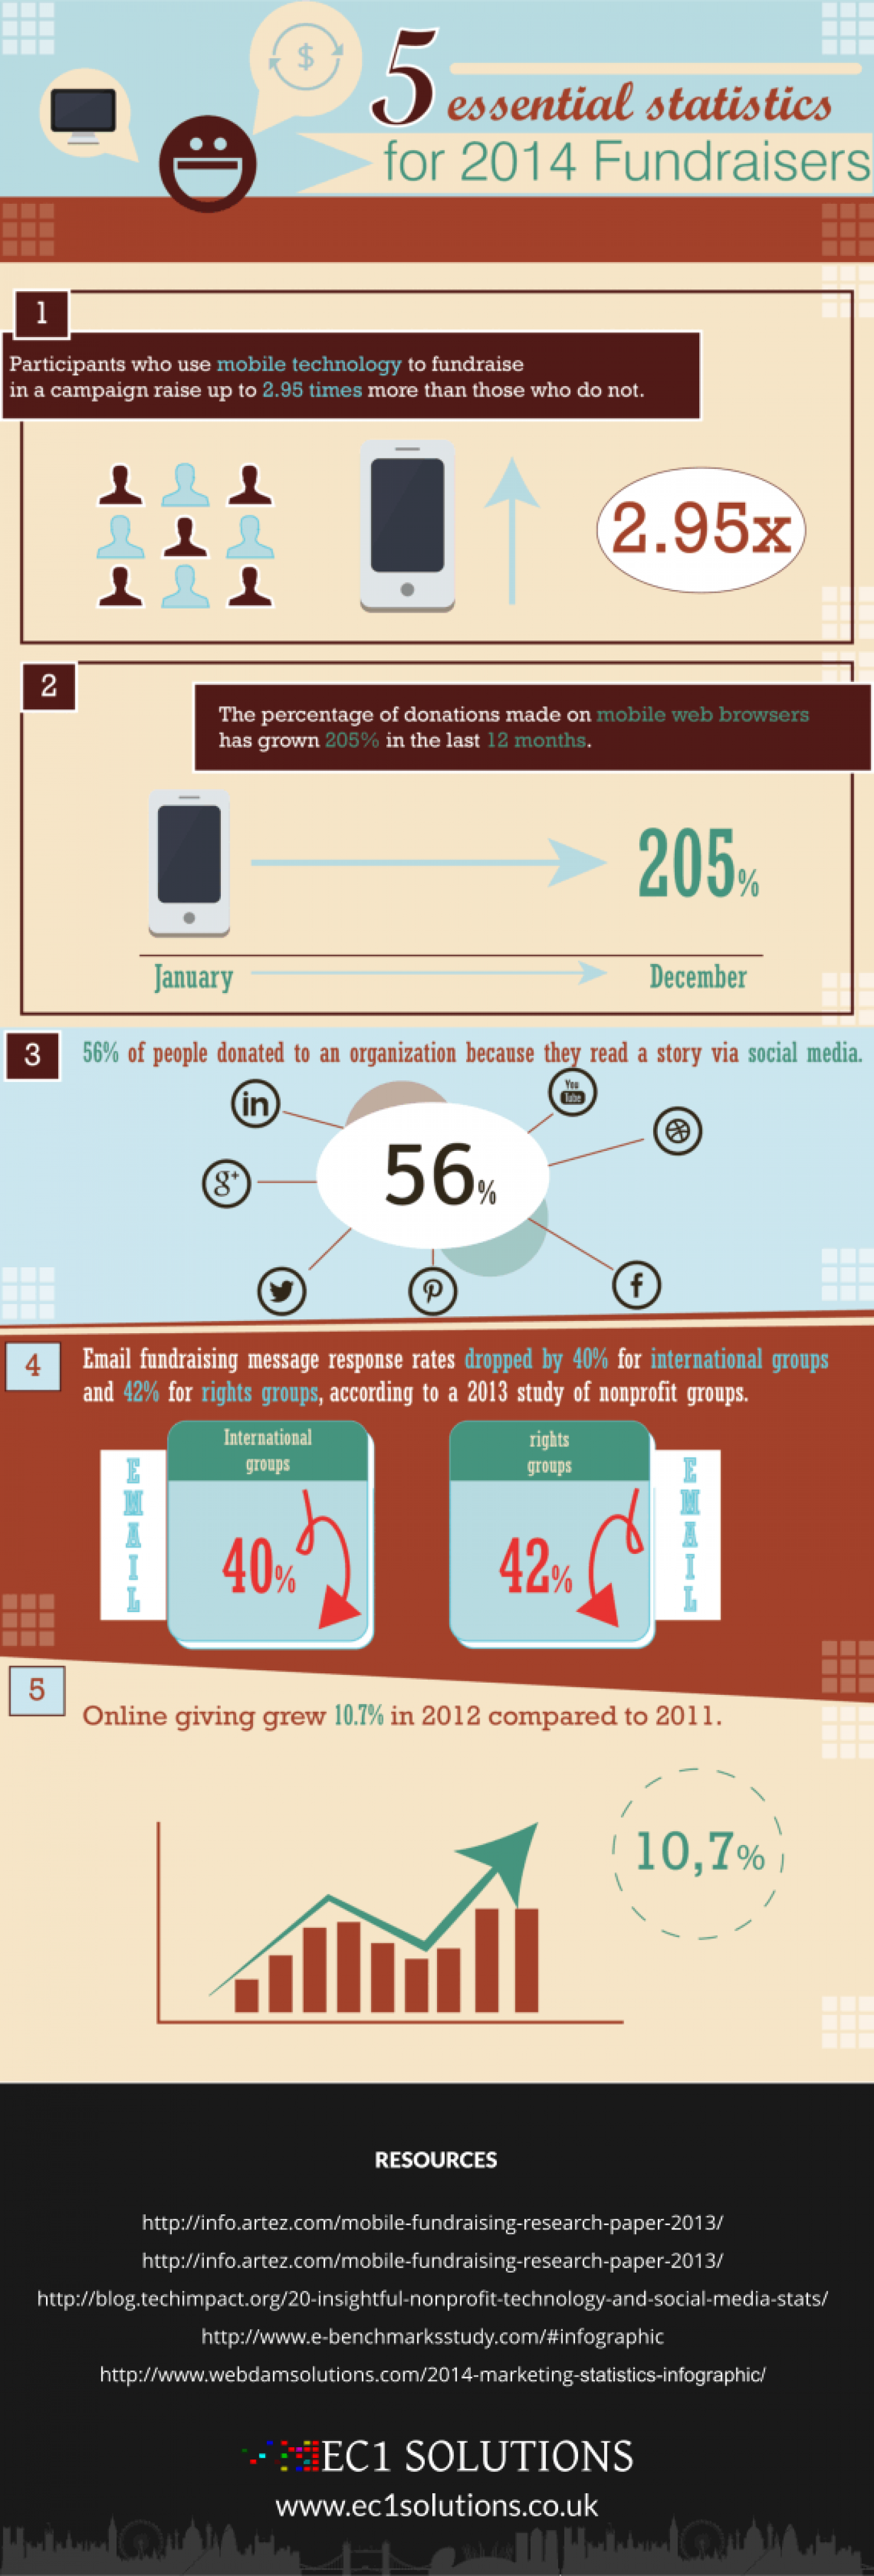 Essential Statistics for 2014 Fundraisers Infographic